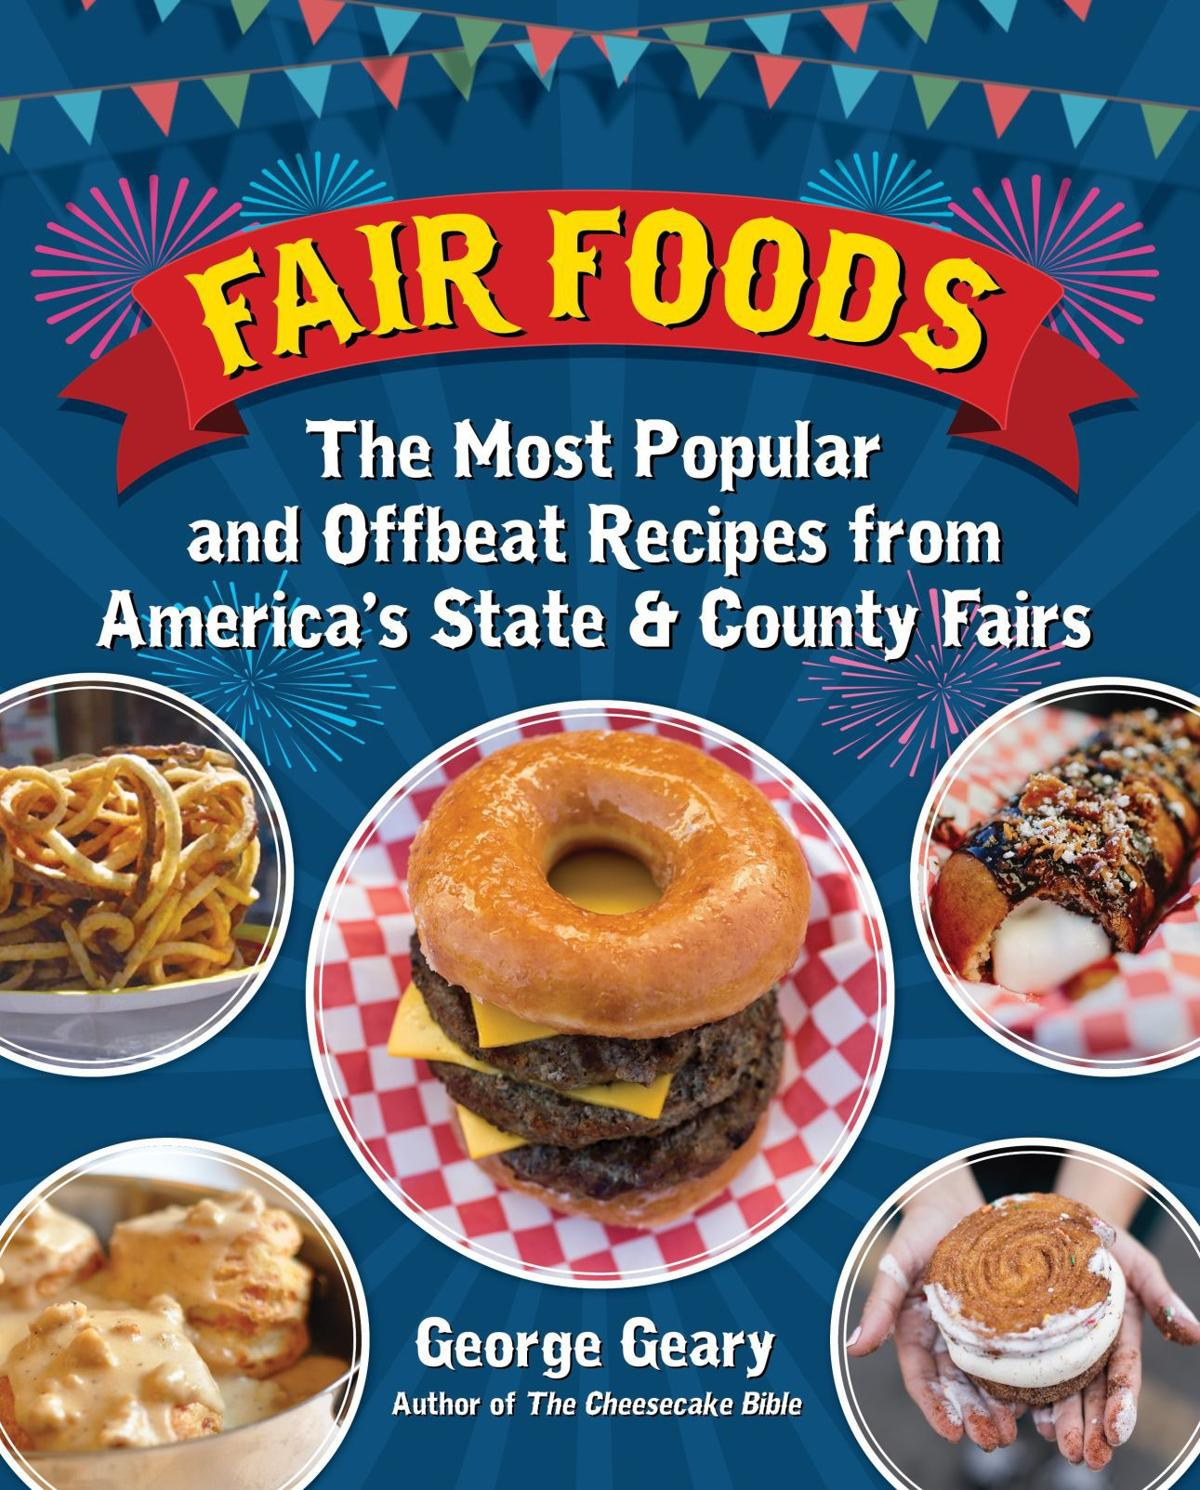 Fair foods a collection of recipes from the popular to the weird fair foods book cover forumfinder Images